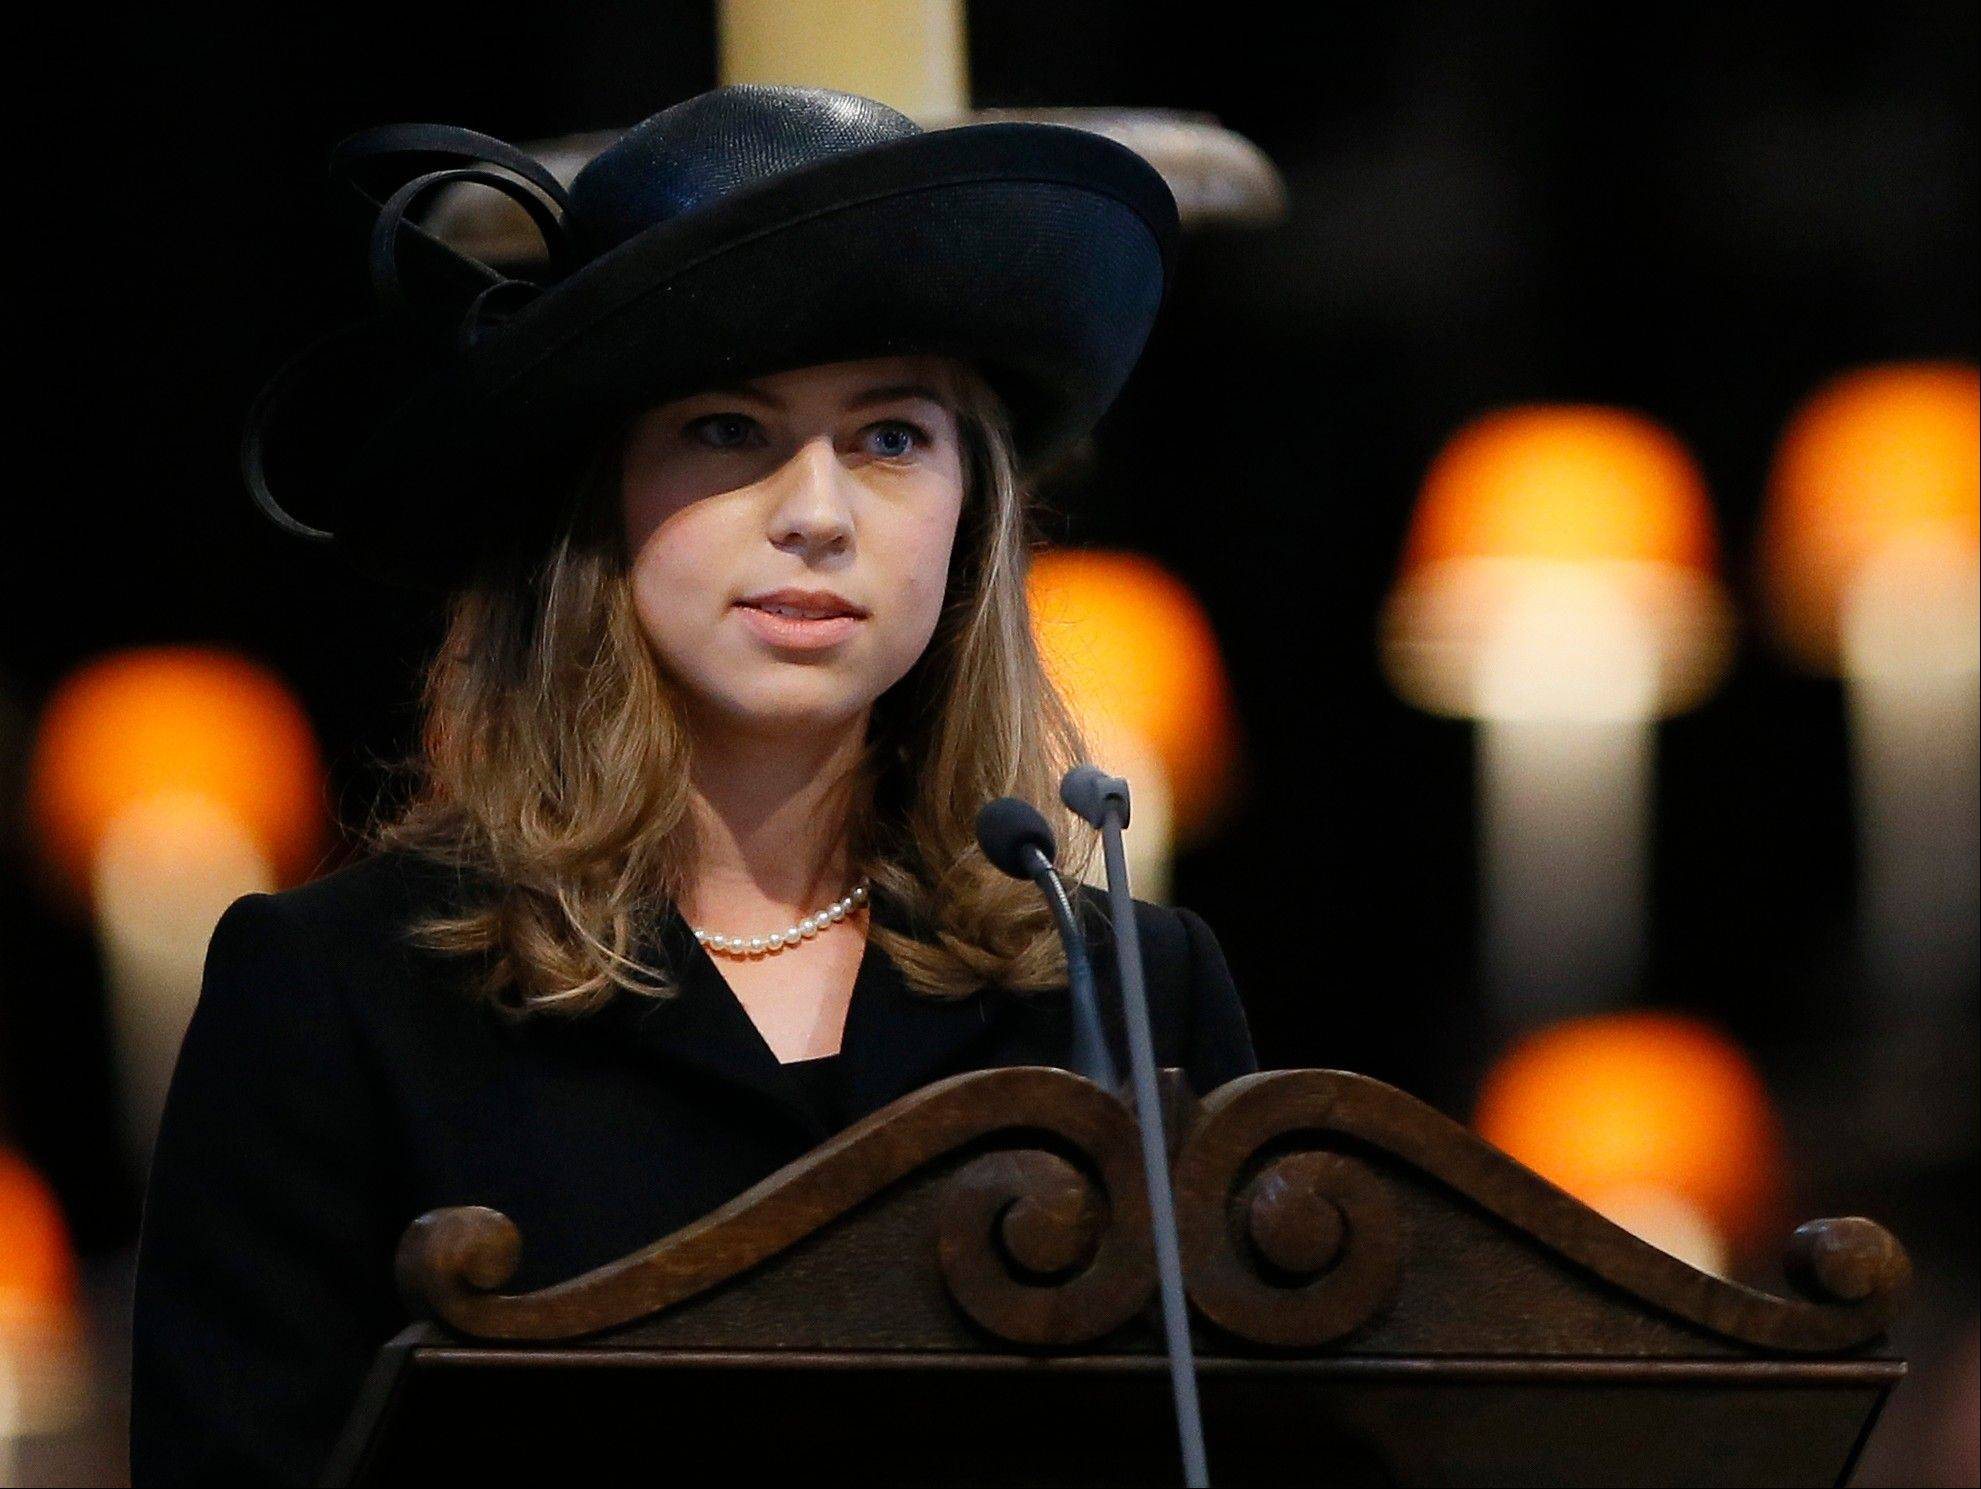 Amanda Thatcher, granddaughter of former British Prime Minister Margaret Thatcher, delivers a reading during the funeral service in St Paul's Cathedral in London, Wednesday, April 17, 2013. Margaret Thatcher, Britain's Iron Lady, was laid to rest Wednesday with a level of pomp and protest reflecting her status as a commanding, polarizing political figure.